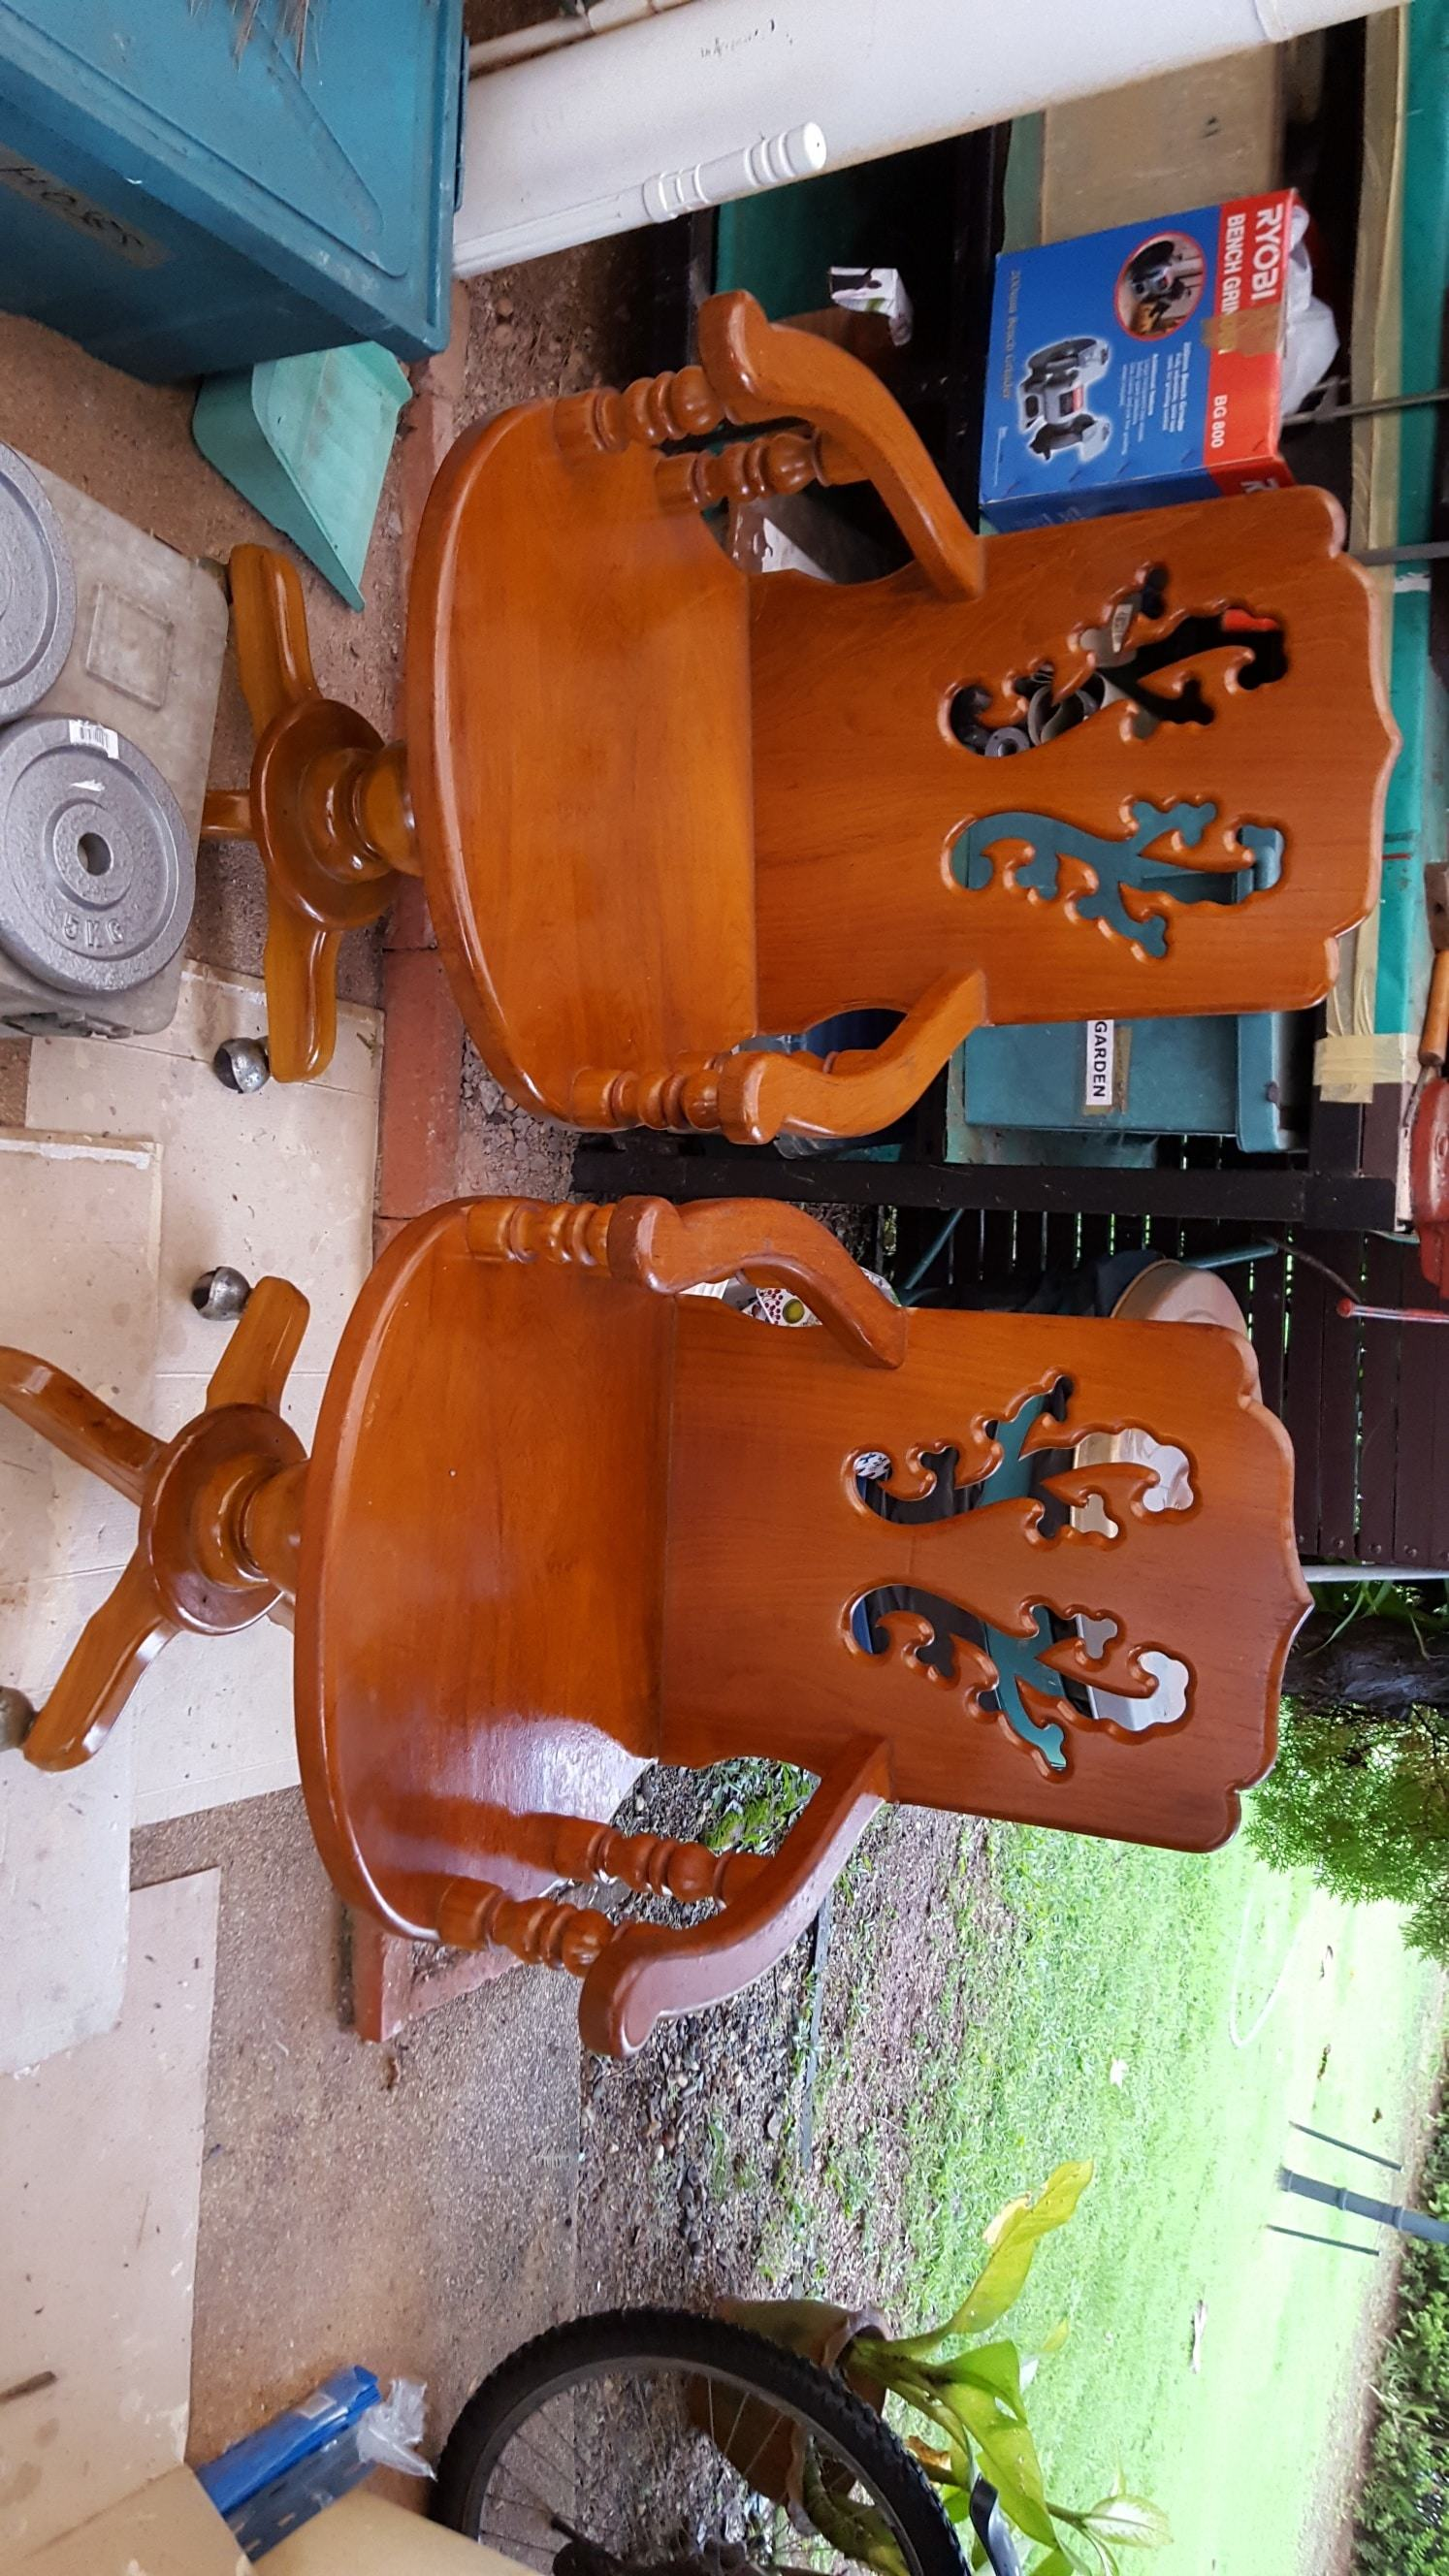 2 Teak wood chairs